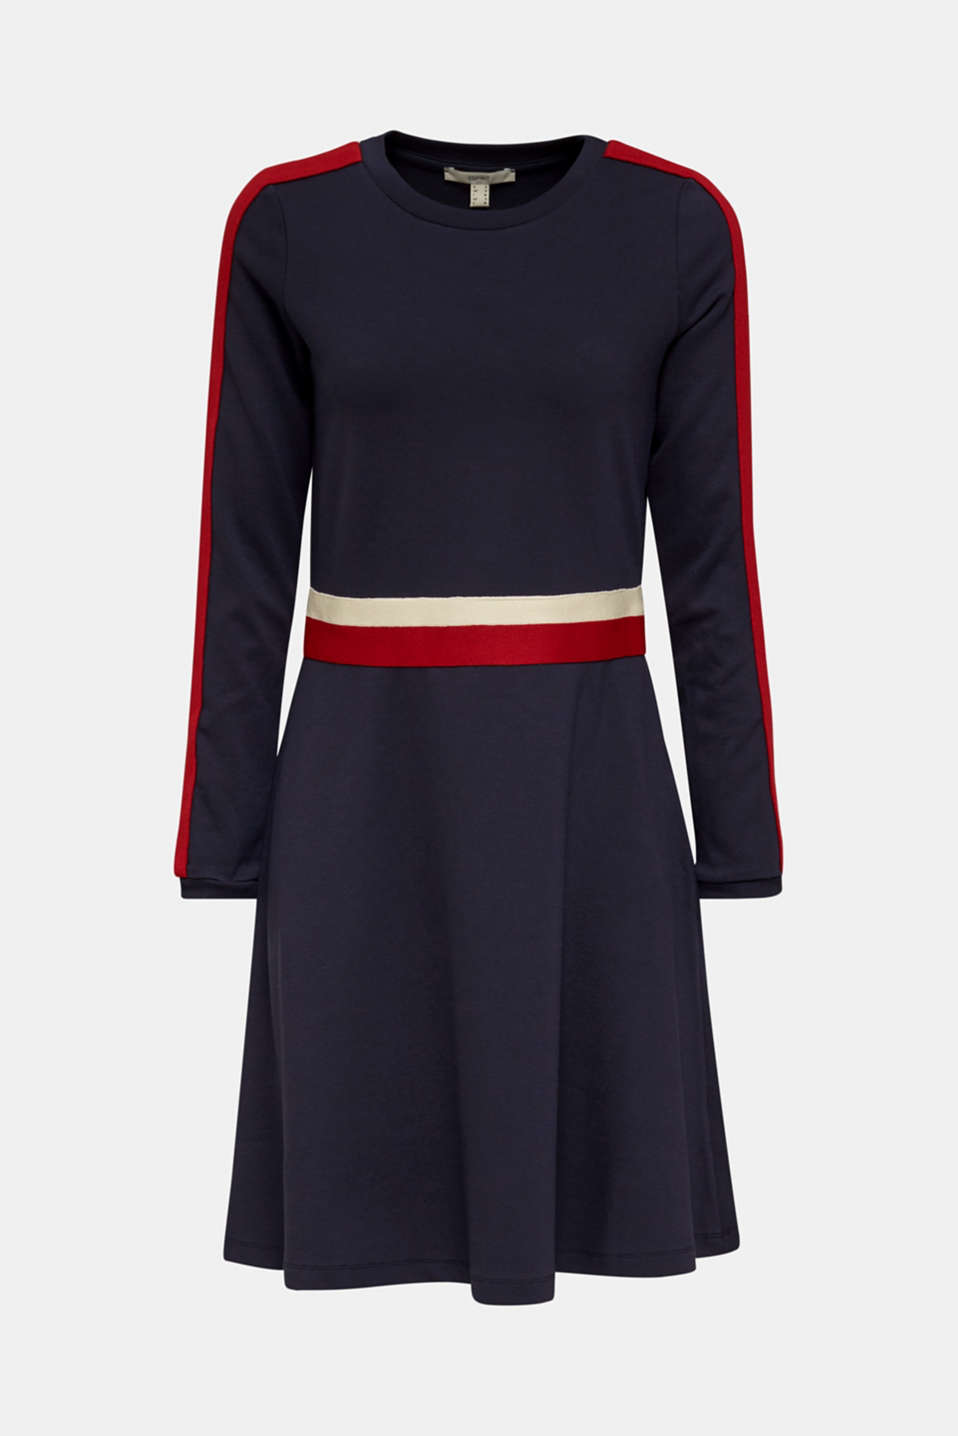 Dresses knitted, NAVY, detail image number 6